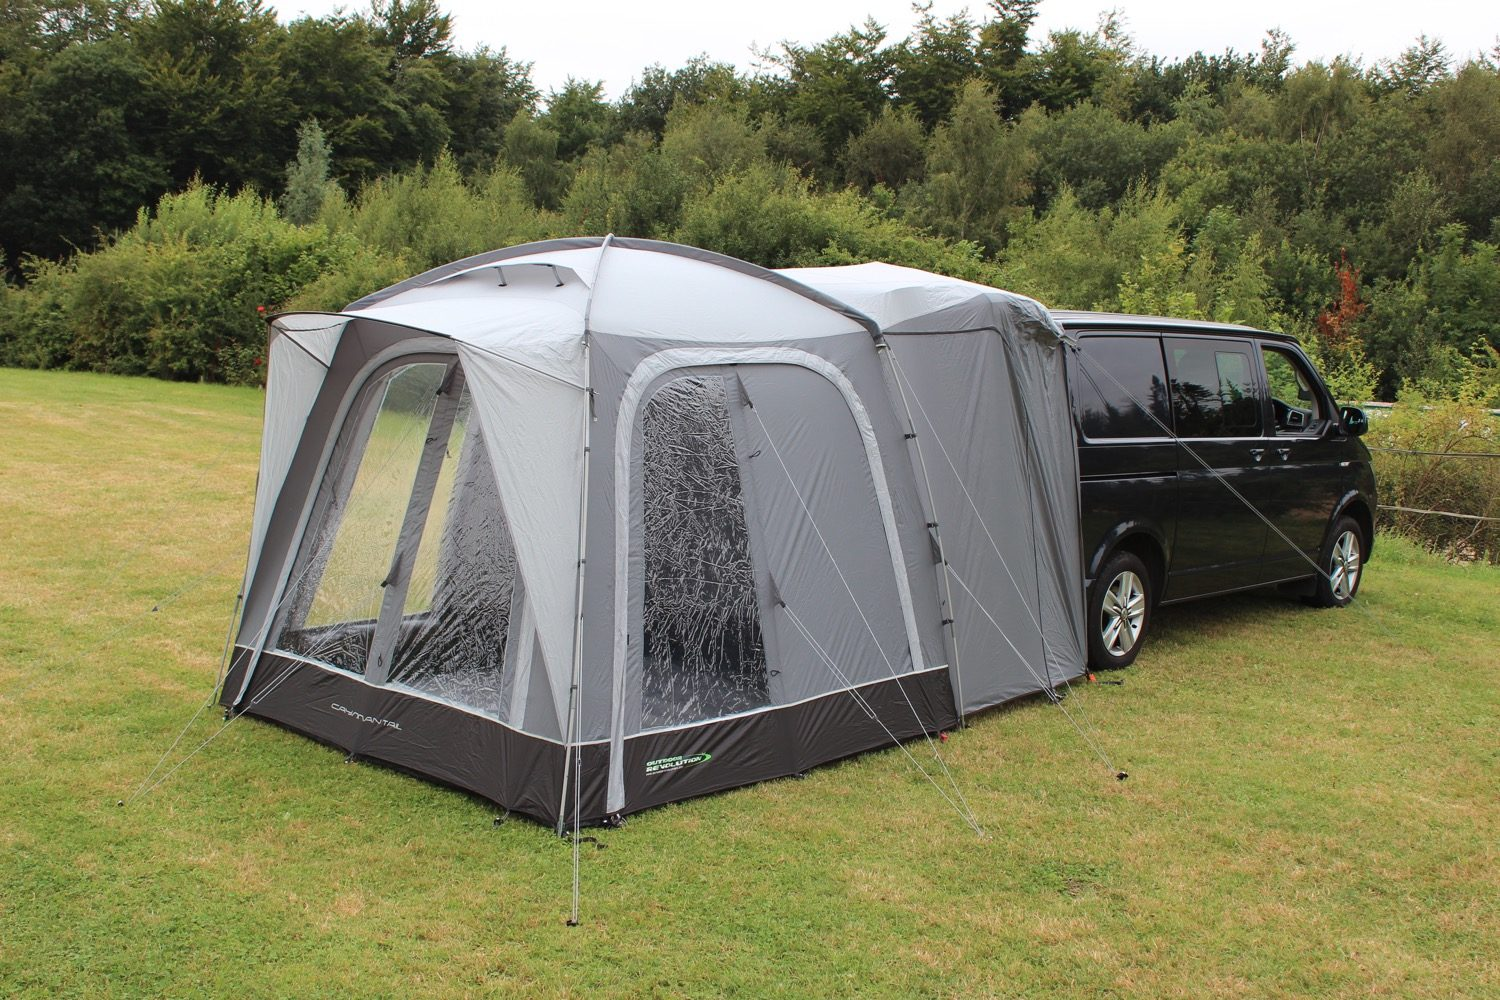 Outdoor Revolution Cayman Tail Poled Awning 2021 Norwich Camping 8